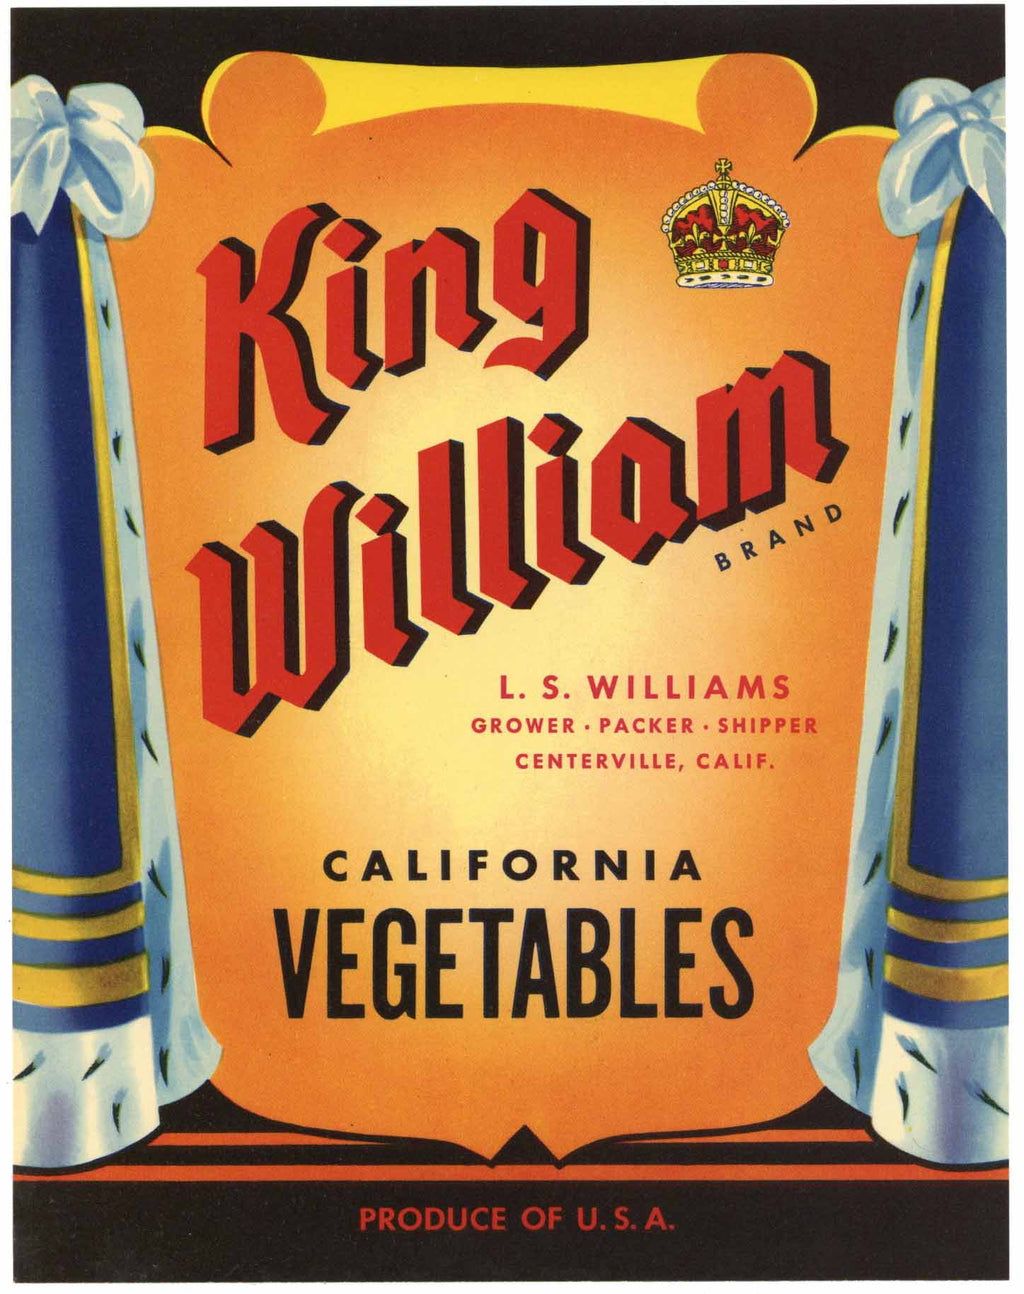 King William Brand Vintage Centerville Vegetable Crate Label